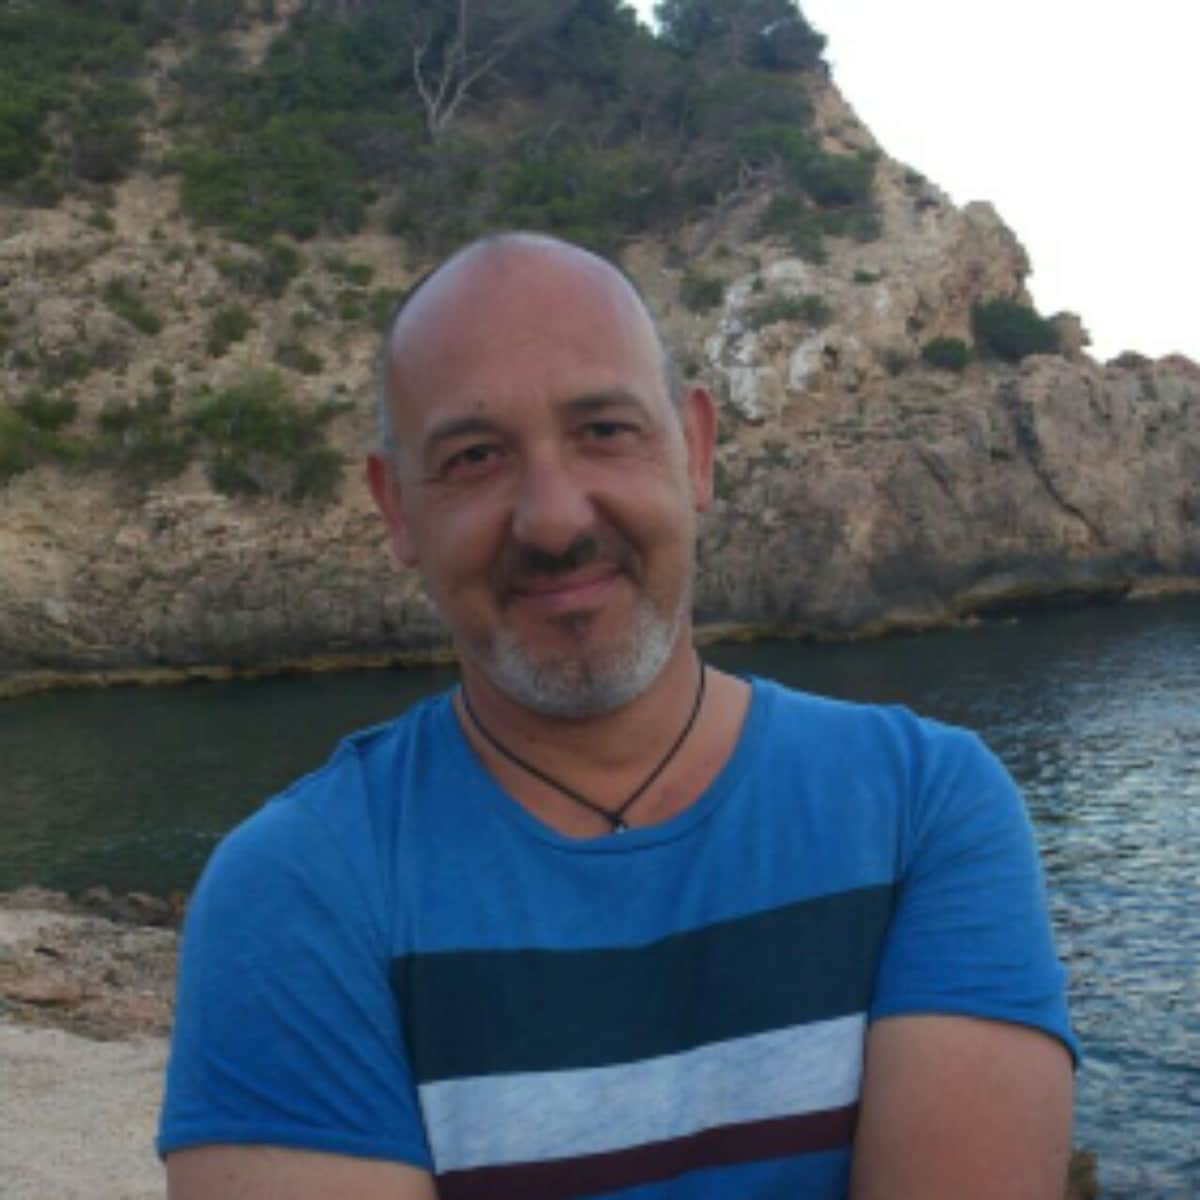 Jose Luis From Santa Eulària des Riu, Spain